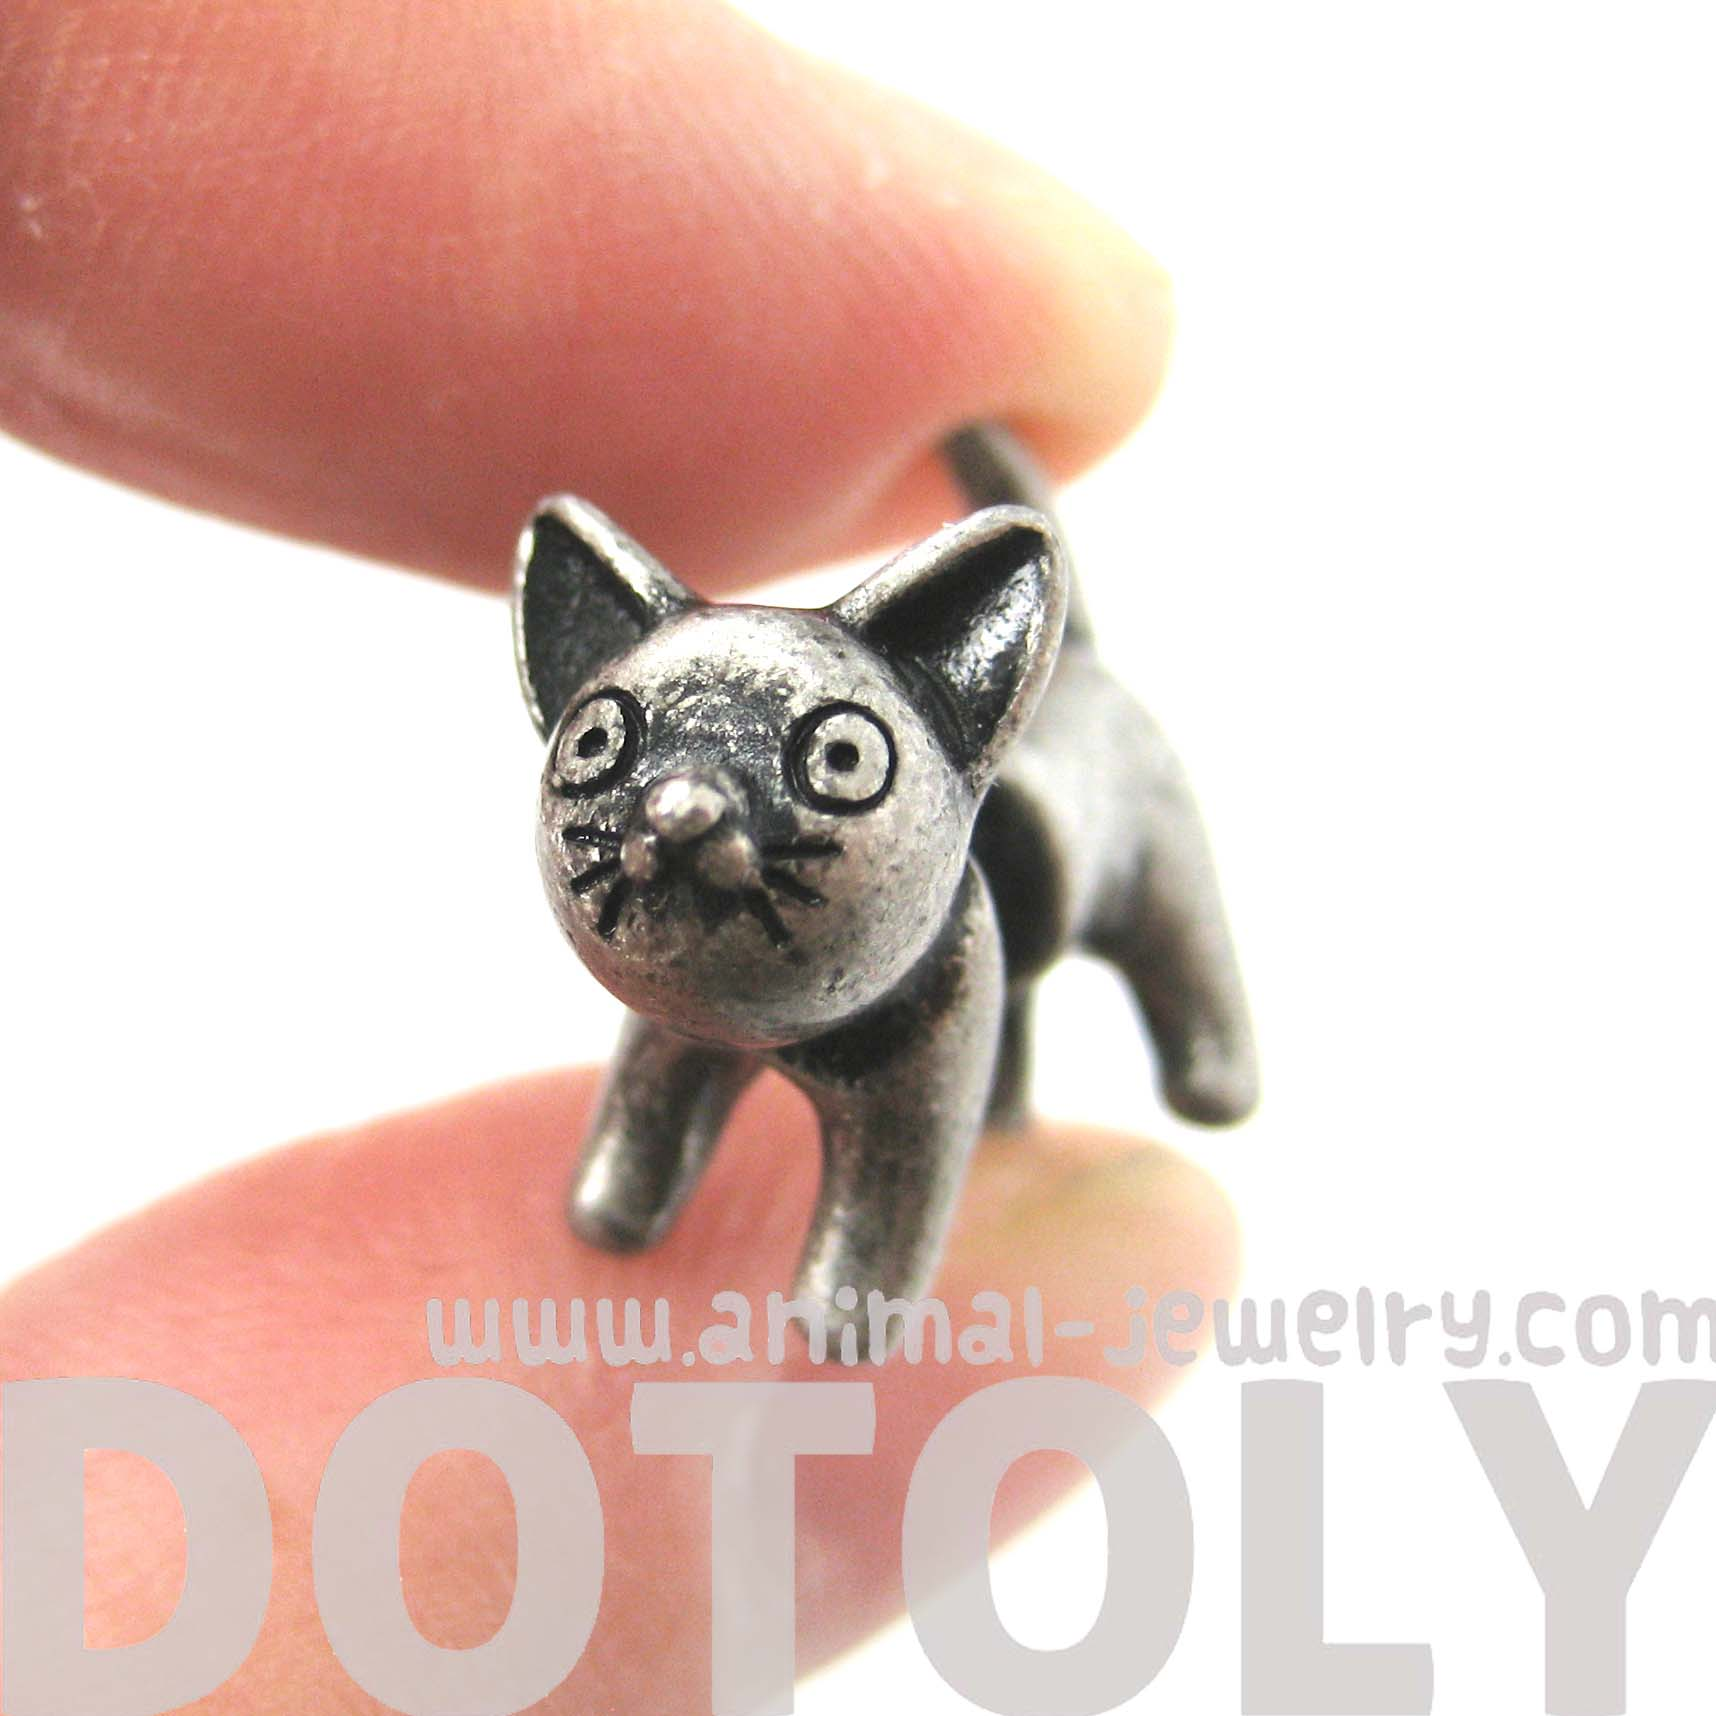 fake-gauge-earrings-adorable-kitty-cat-animal-plug-earrings-in-silver